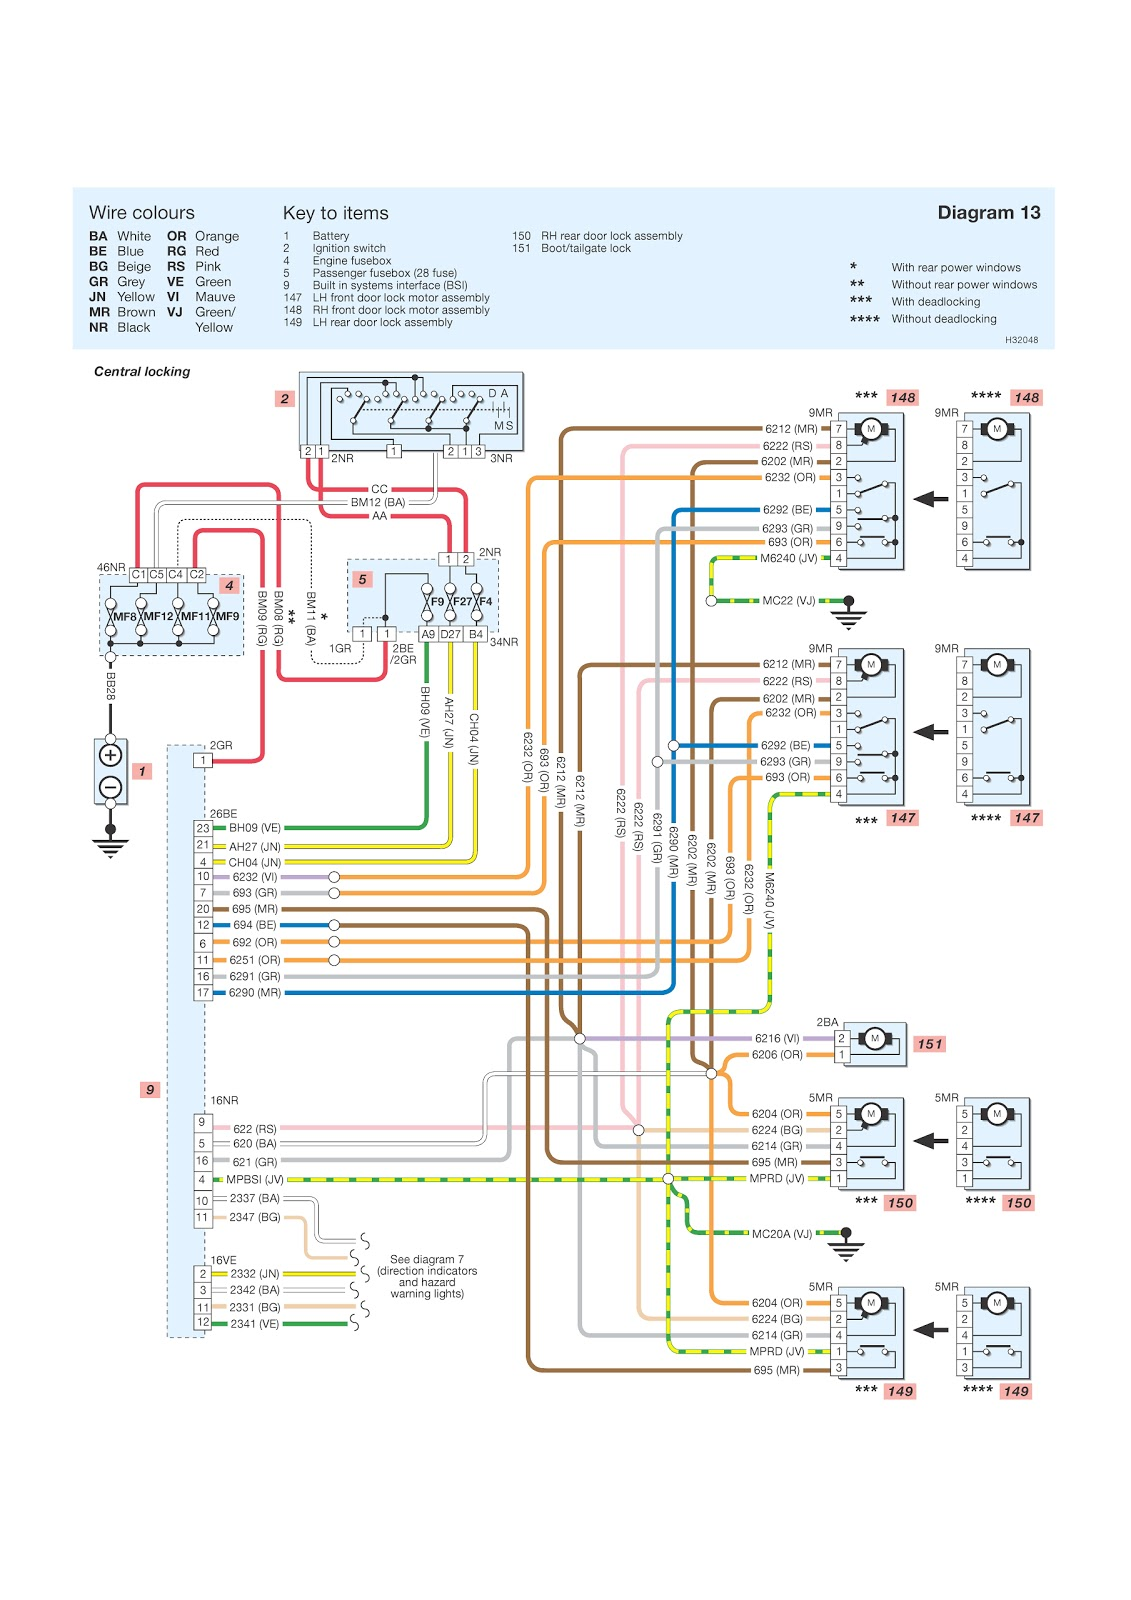 peugeot wiring diagram legend home wiring diagram peugeot 309 gti wiring diagram [ 1131 x 1600 Pixel ]